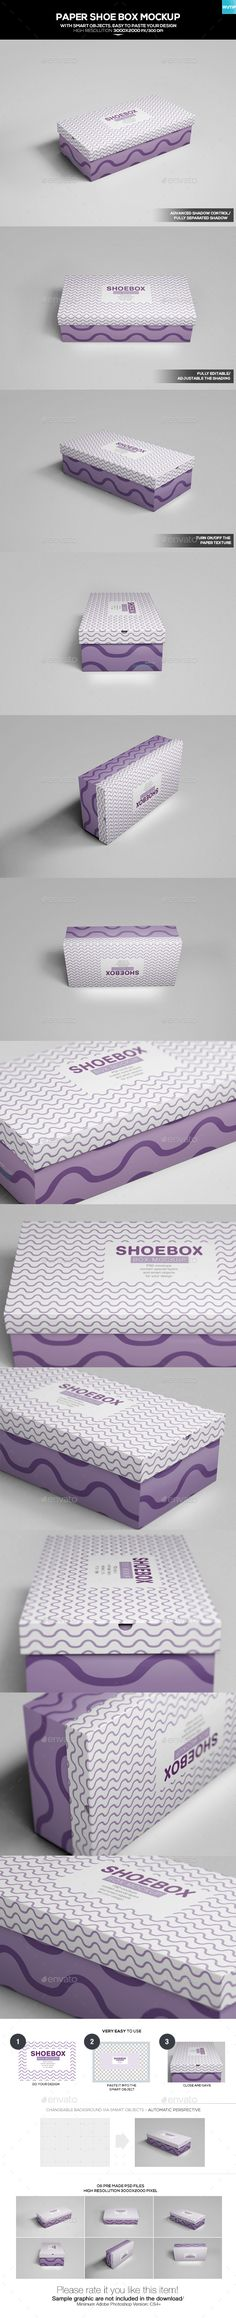 Paper Shoe #Box #Mockup - Miscellaneous #Packaging Download here:  https://graphicriver.net/item/paper-shoe-box-mockup/20110444?ref=alena994